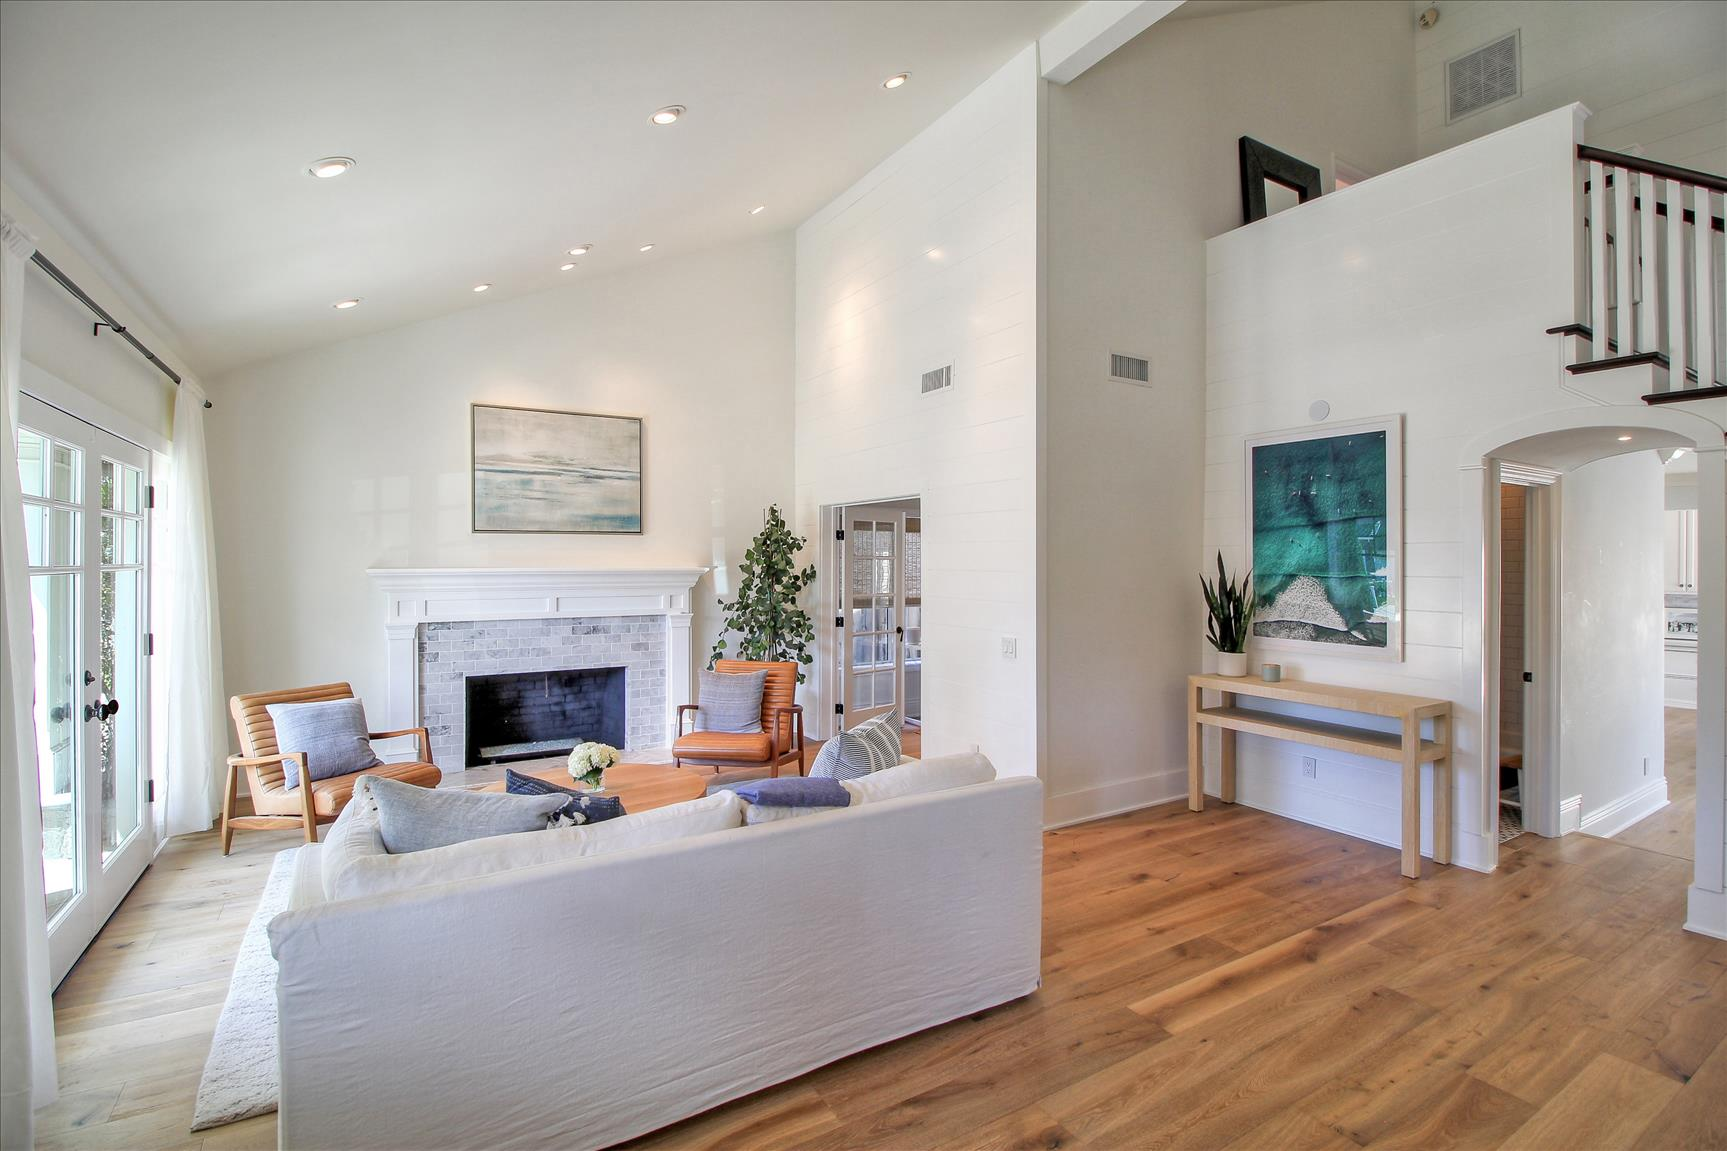 1836 Port Barmouth Pl, Newport Beach, CA  926606.jpg